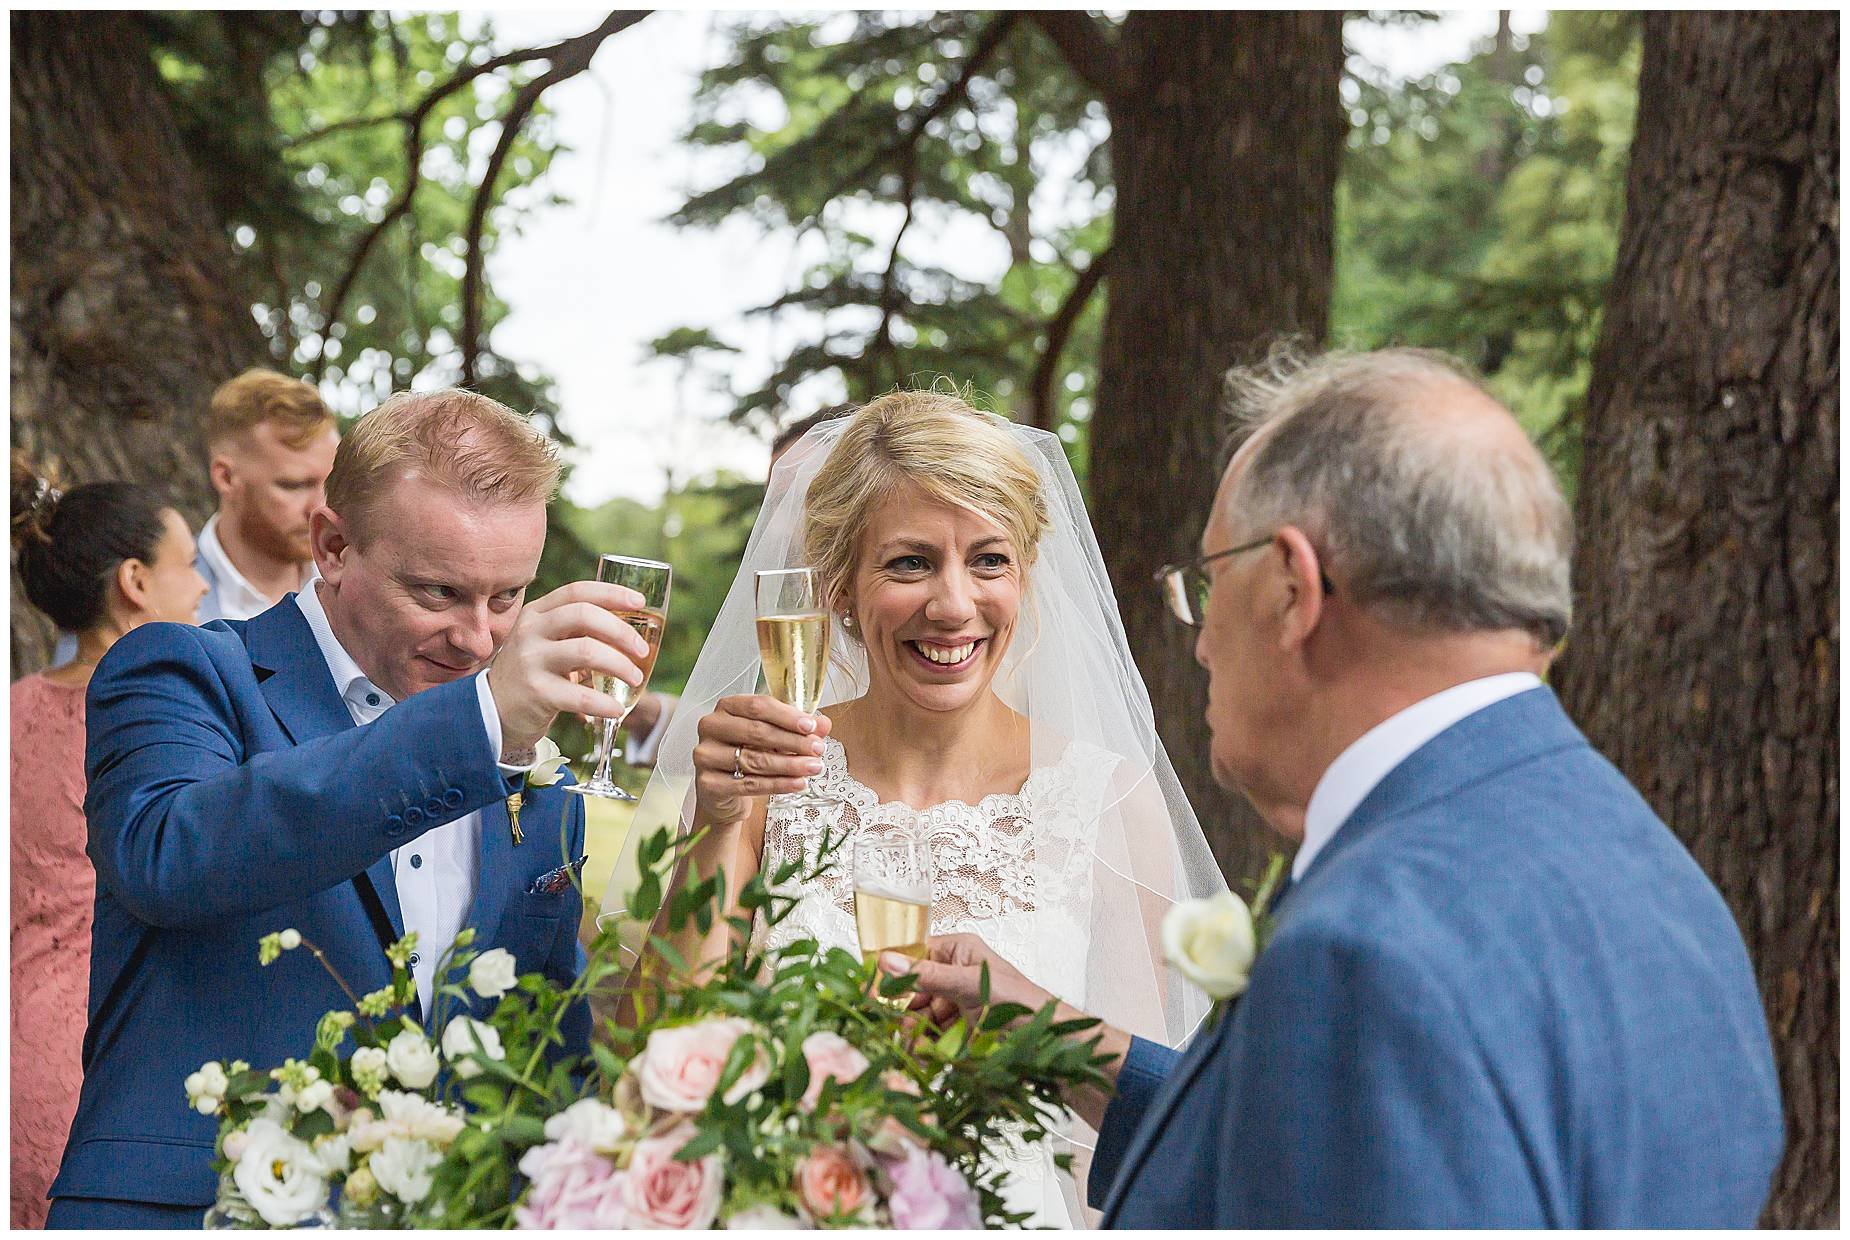 Chateau Blomac Wedding recpeption